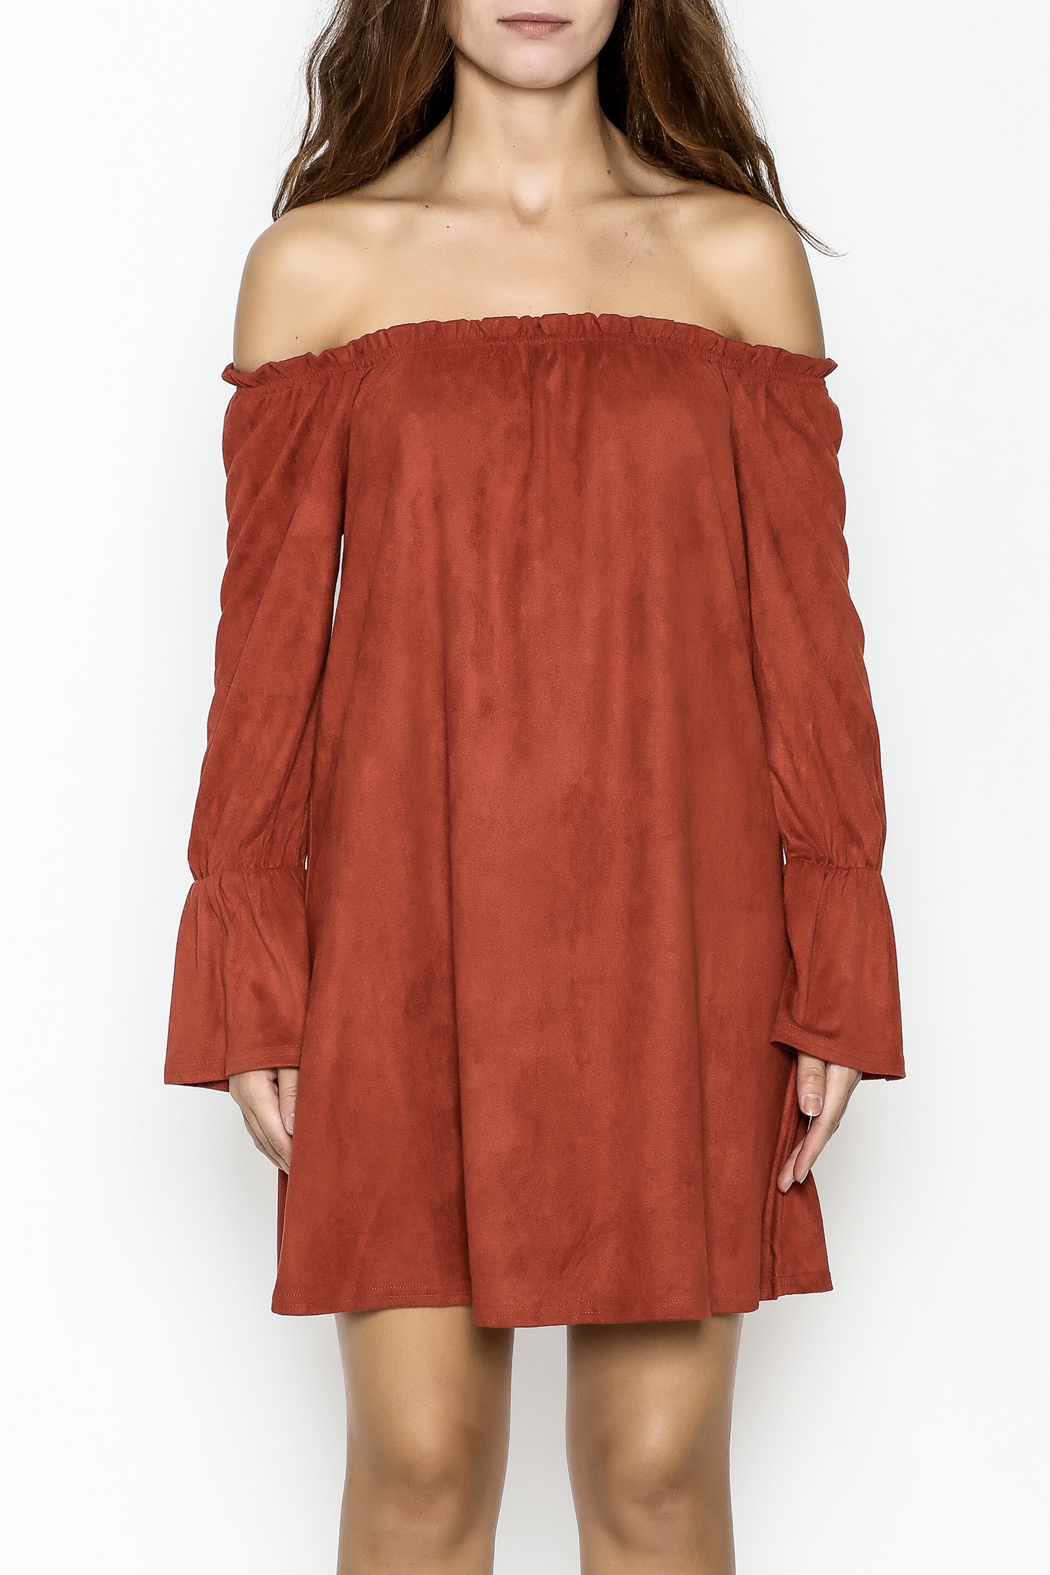 Very J Rust Bell Sleeve Dress - Front Full Image